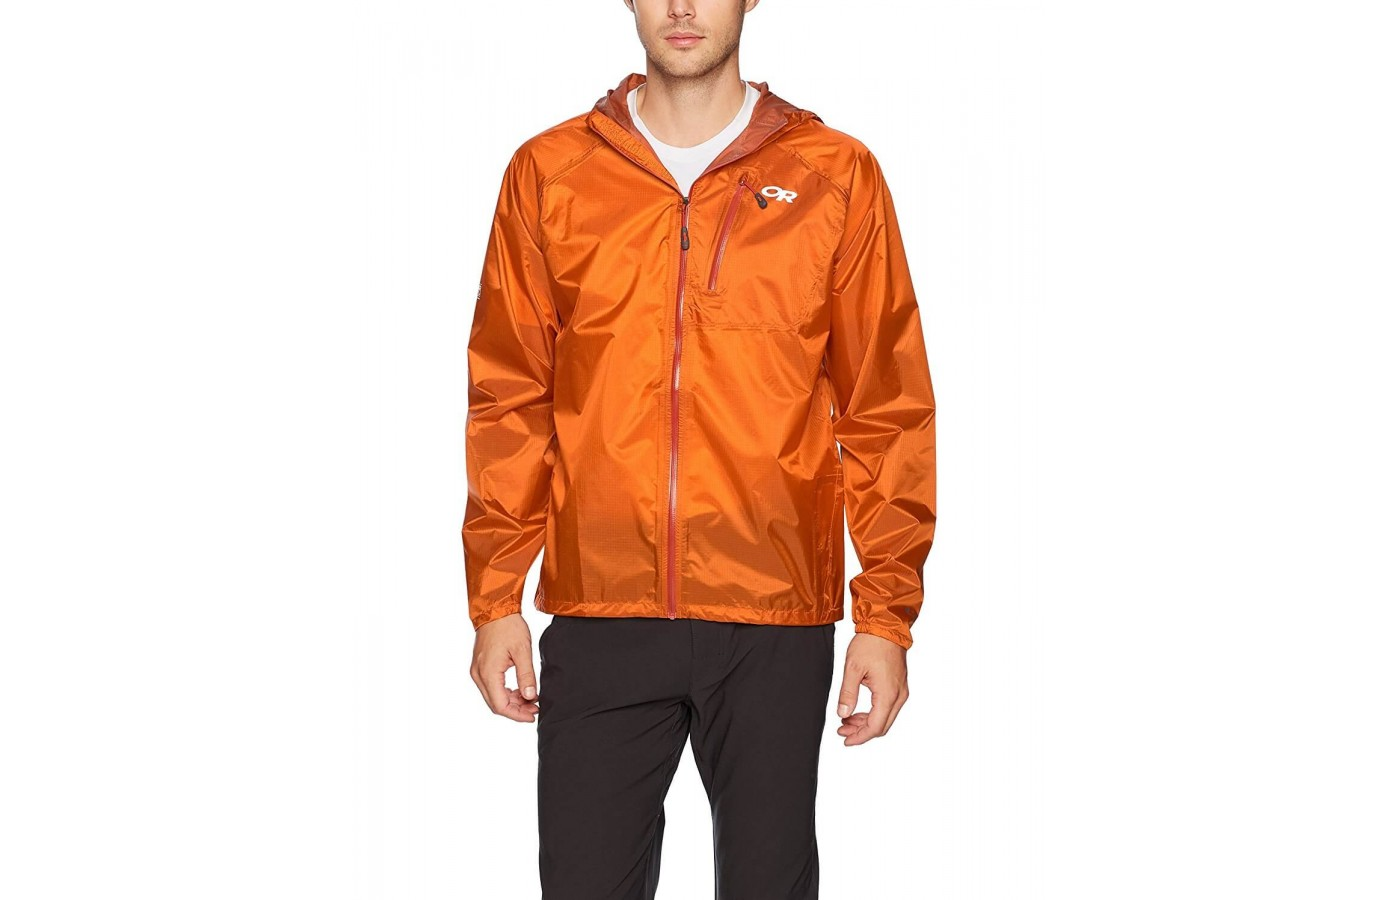 The Outdoor Research Helium II has a zippered chest pocket that can hold small valuables.